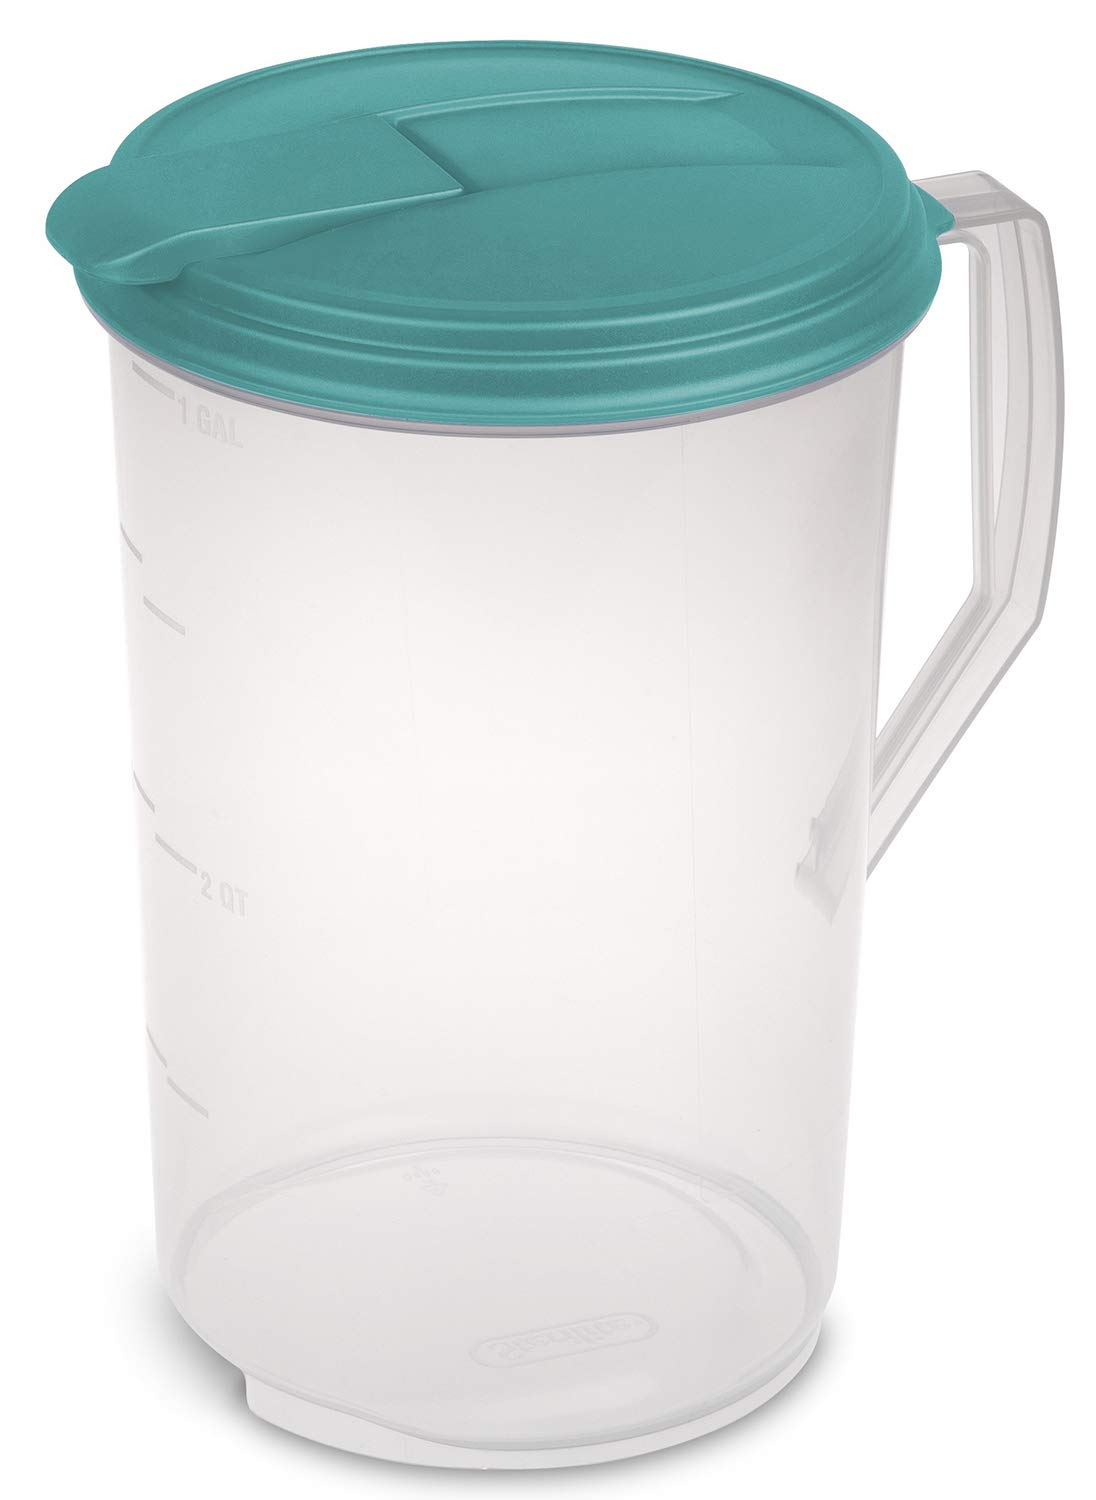 Clear Base with Blue-Atoll Lid and Tab Sterilite 0488 One-Gallon Round Pitcher Teal